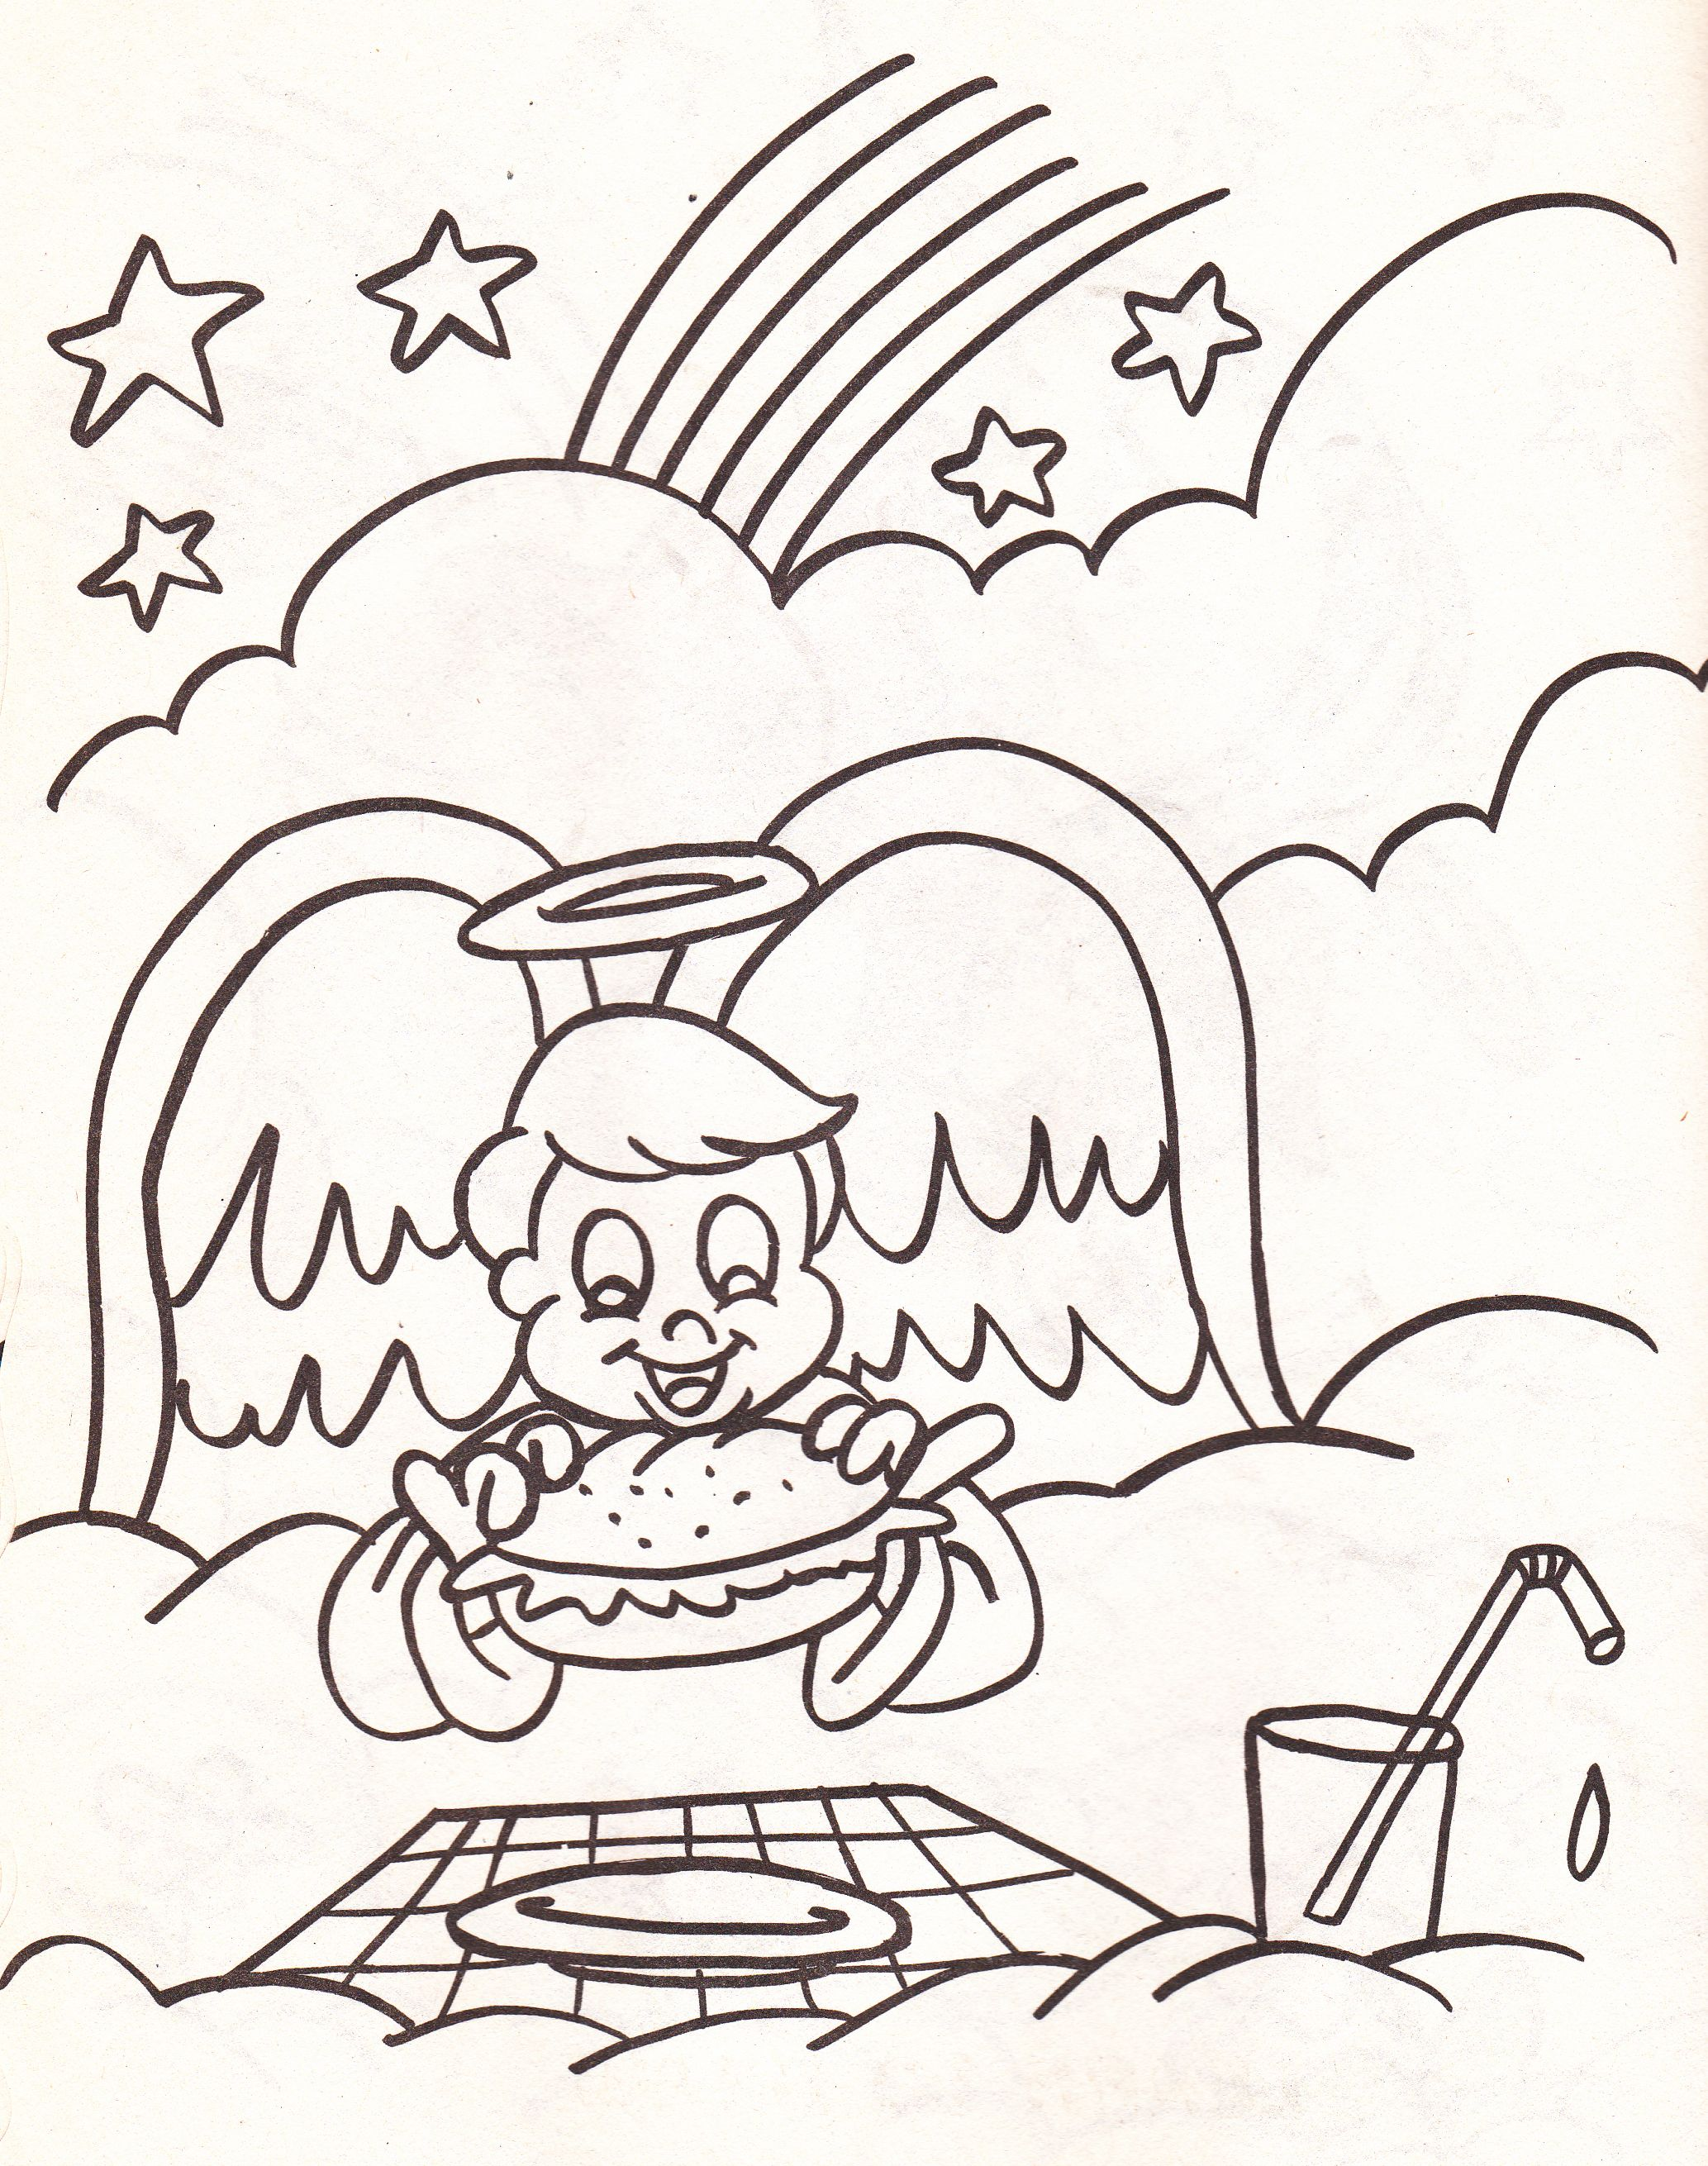 Boy Angel Coloring page - eating a burger | Cool Coloring Pages ...